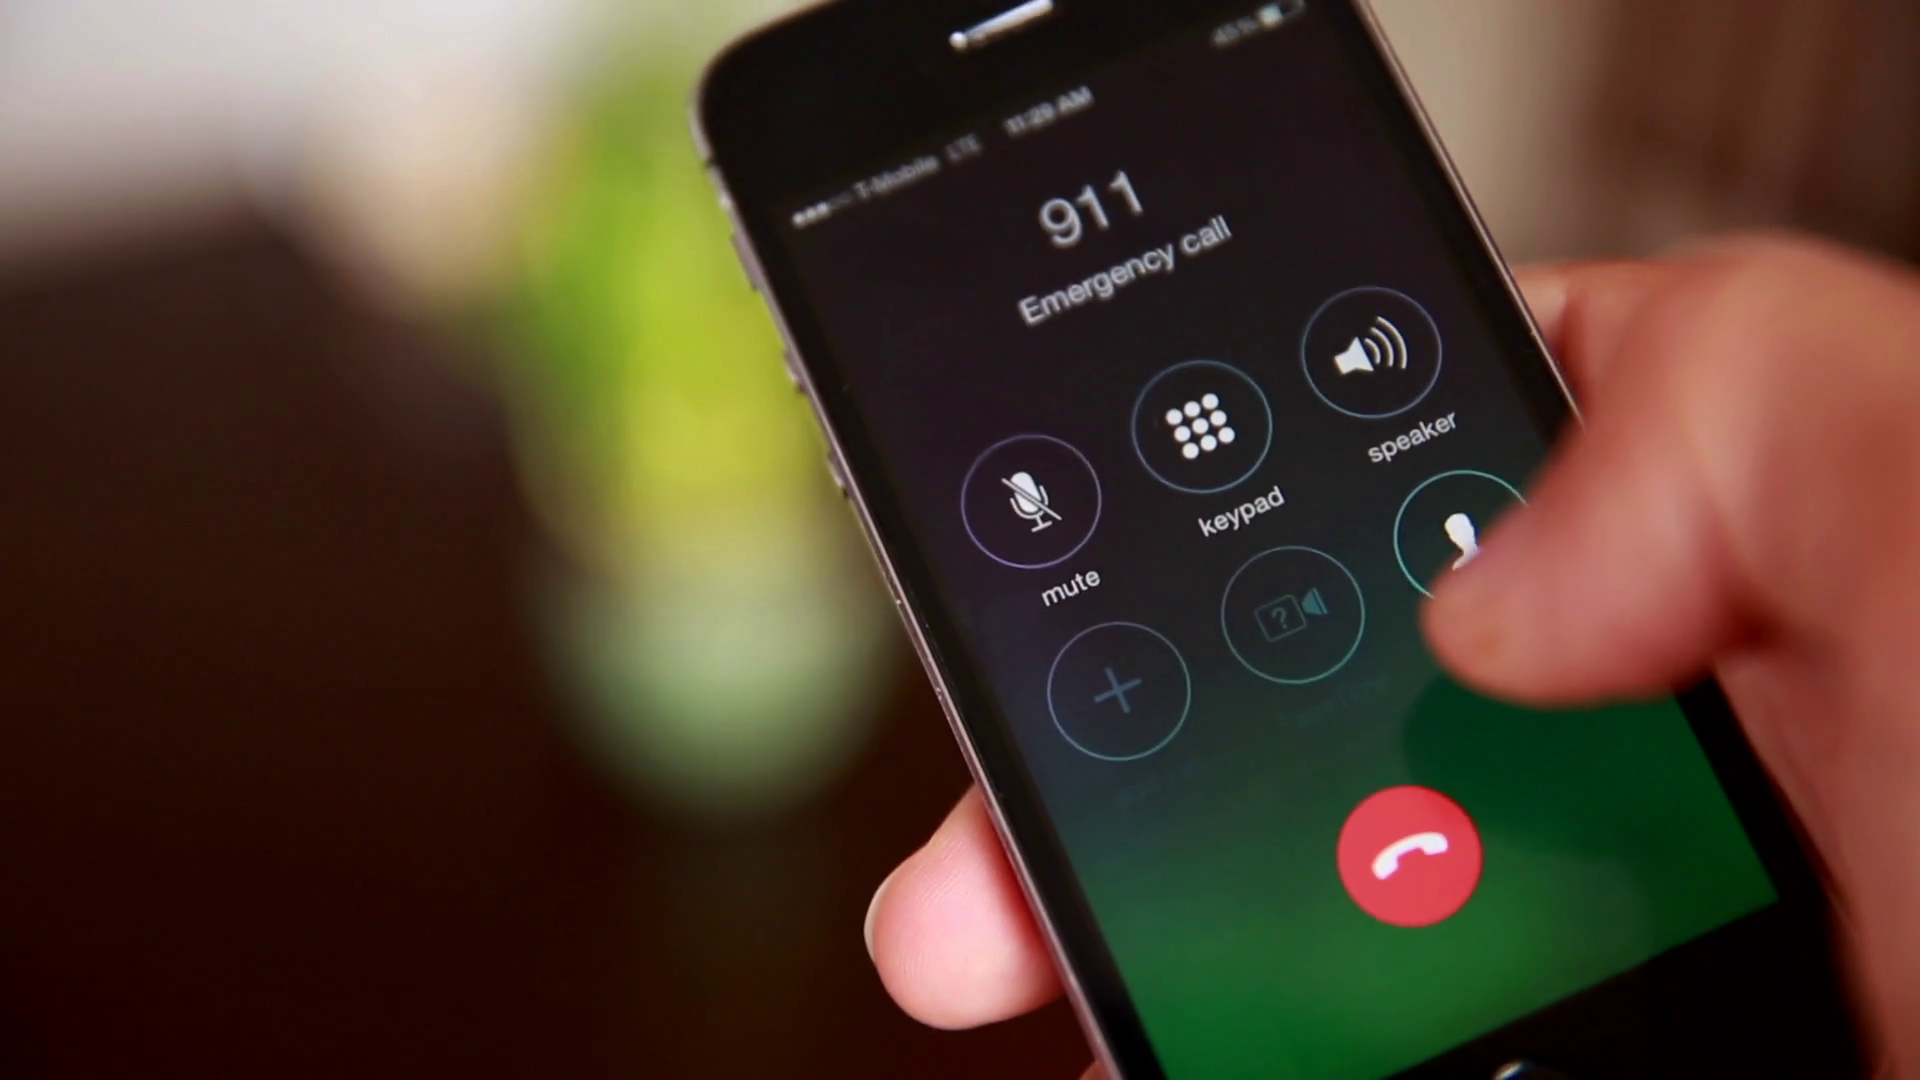 911 Dispatcher Answers Emergency Call, Only To Hear A Familiar Voice